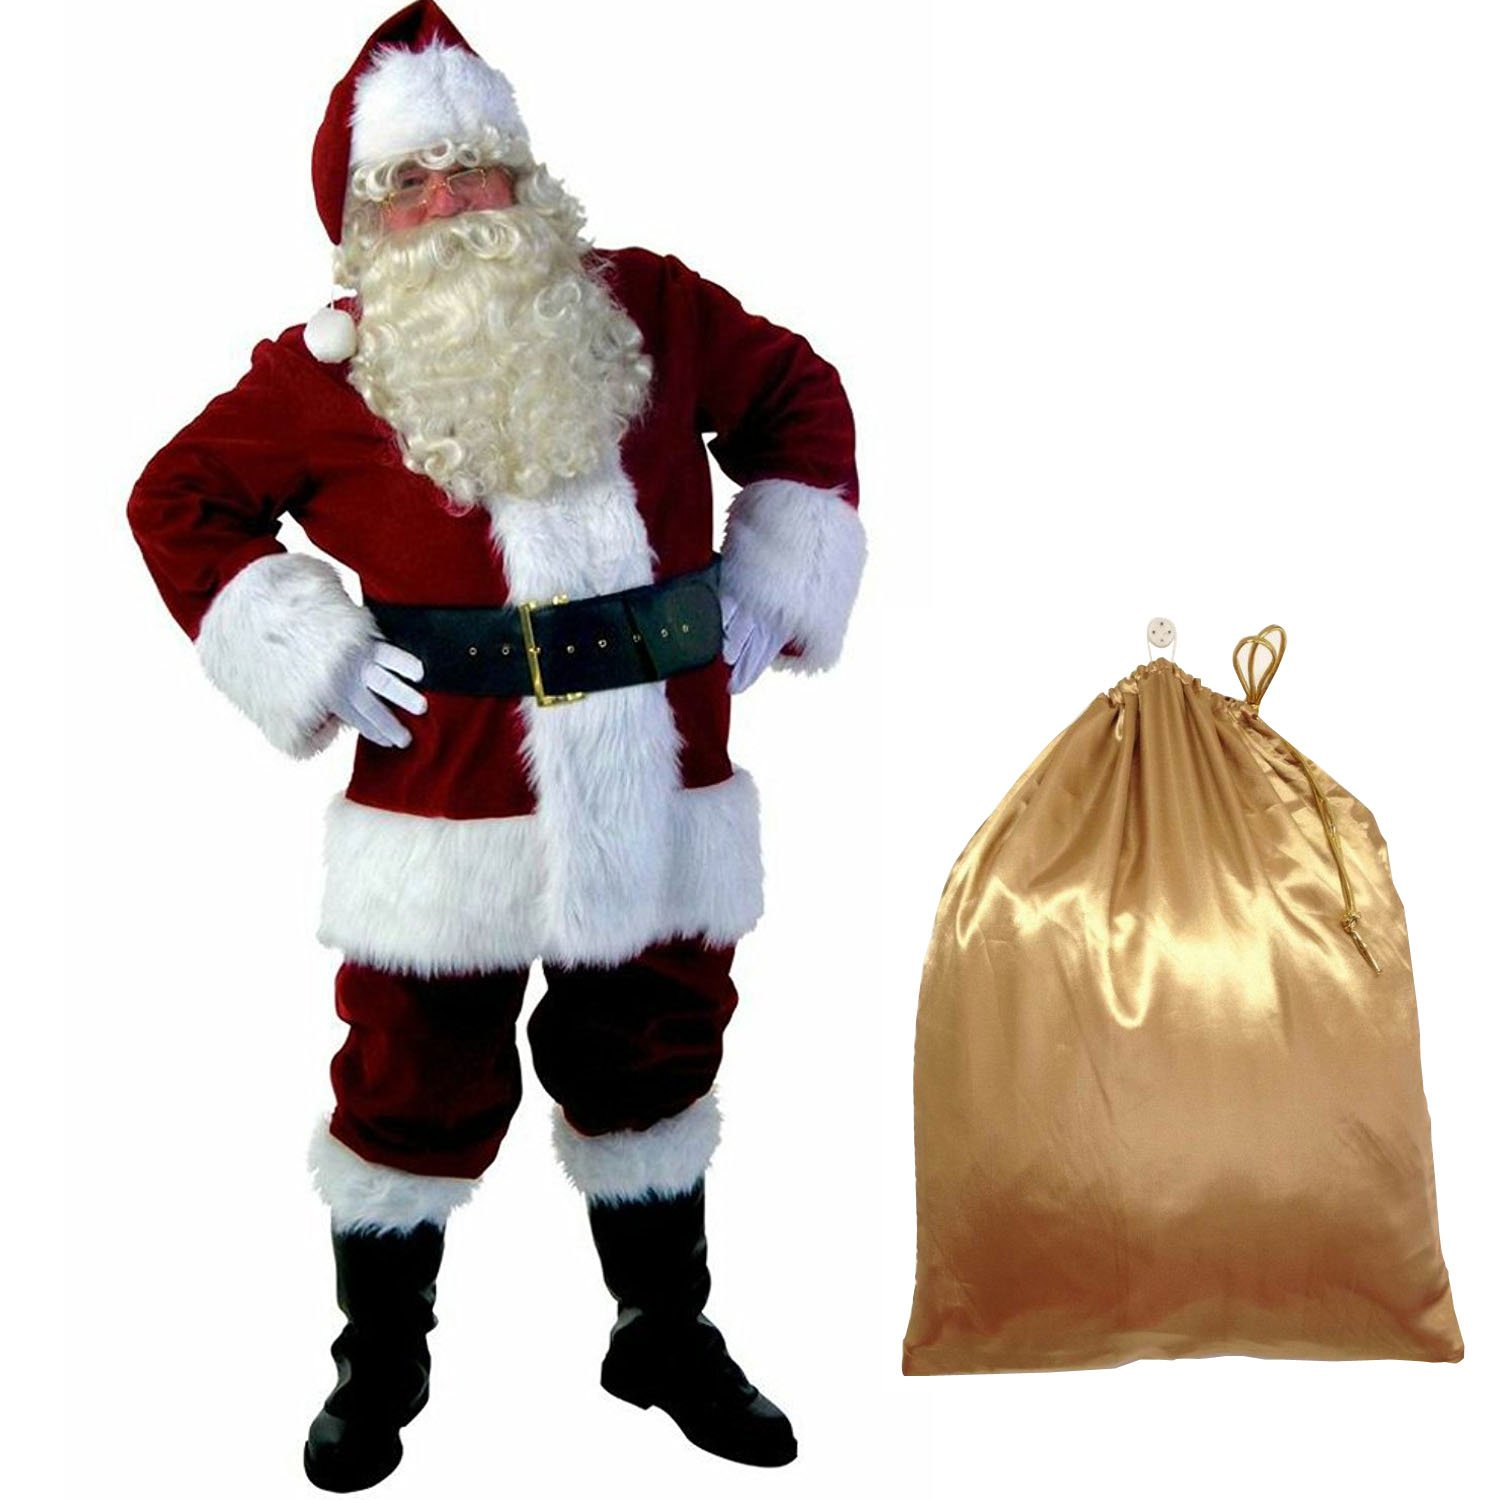 Ya-cos Christmas Santa Claus Luxury Suit Deluxe Adult Cosplay Costume Outfit 10 Pcs (Large)